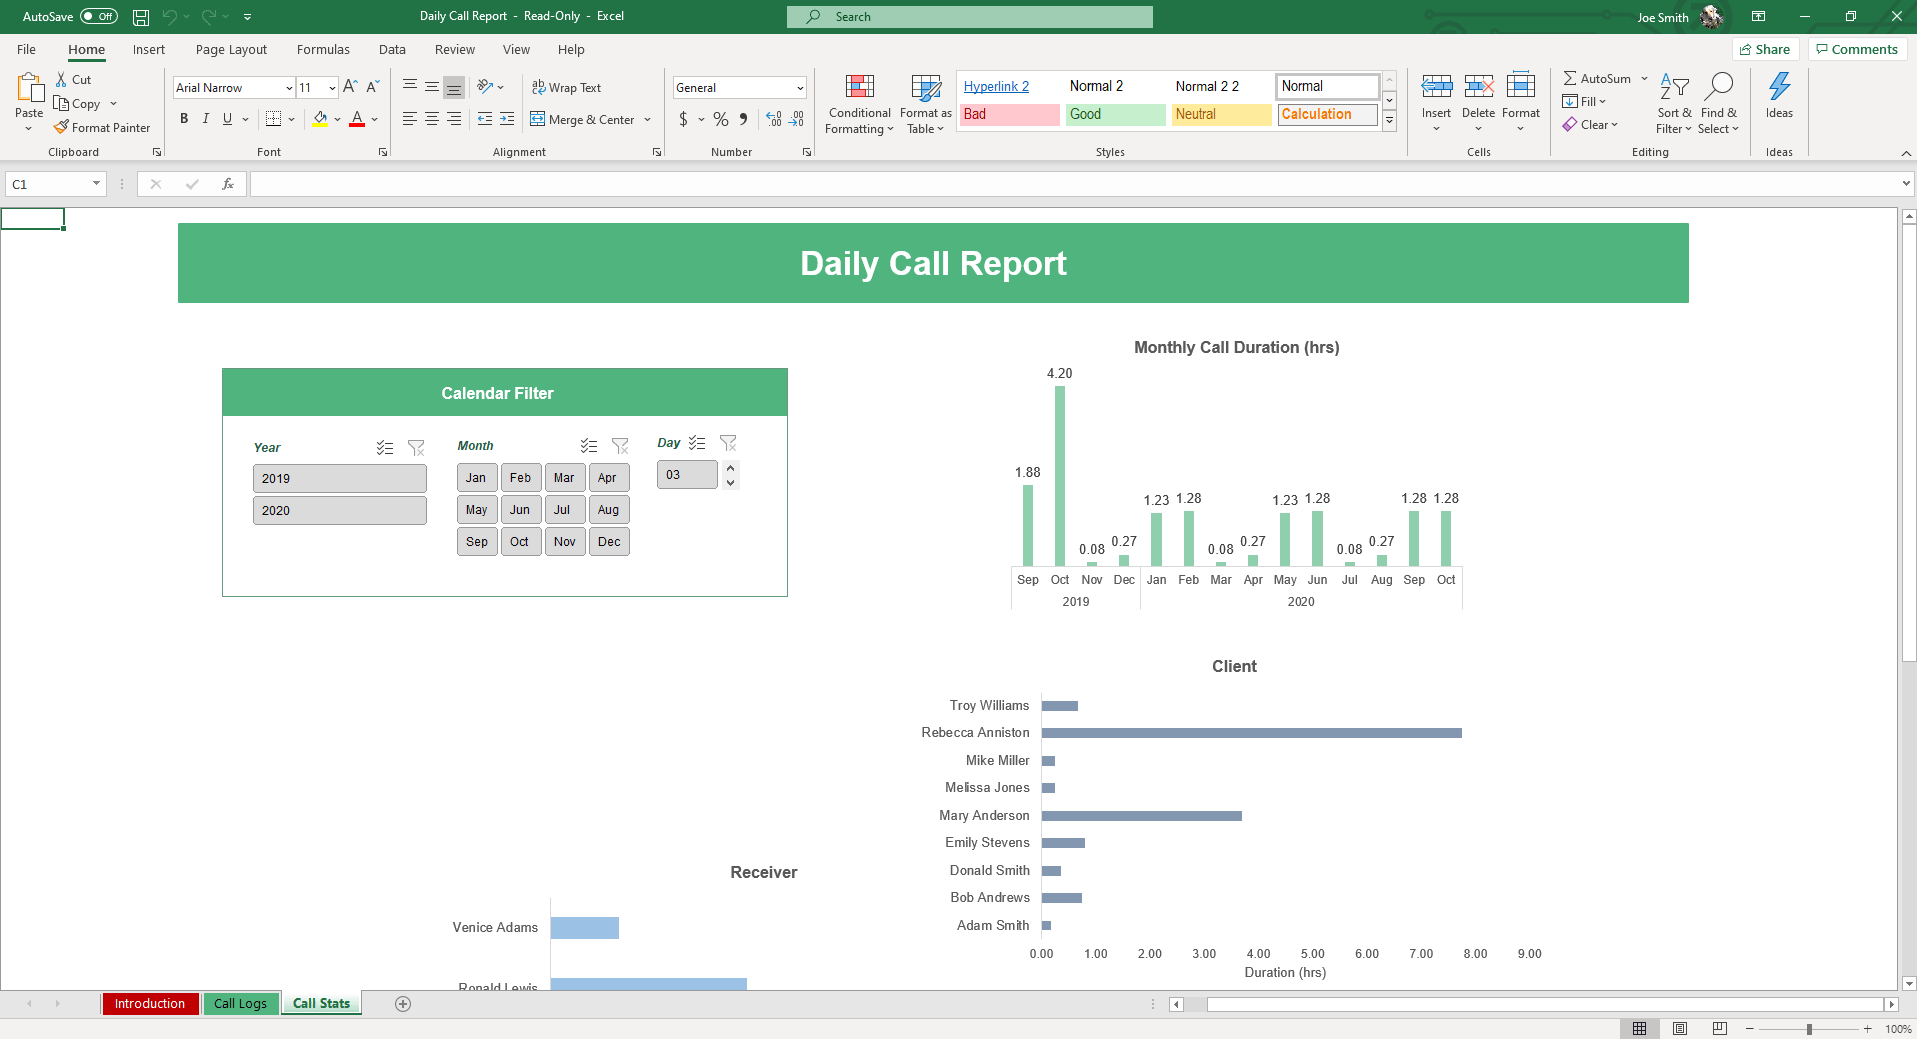 Easily add call data to the Call Logs sheet of our Daily Call Report Excel Template. Data slicers allow you to filter and add new reports everyday.